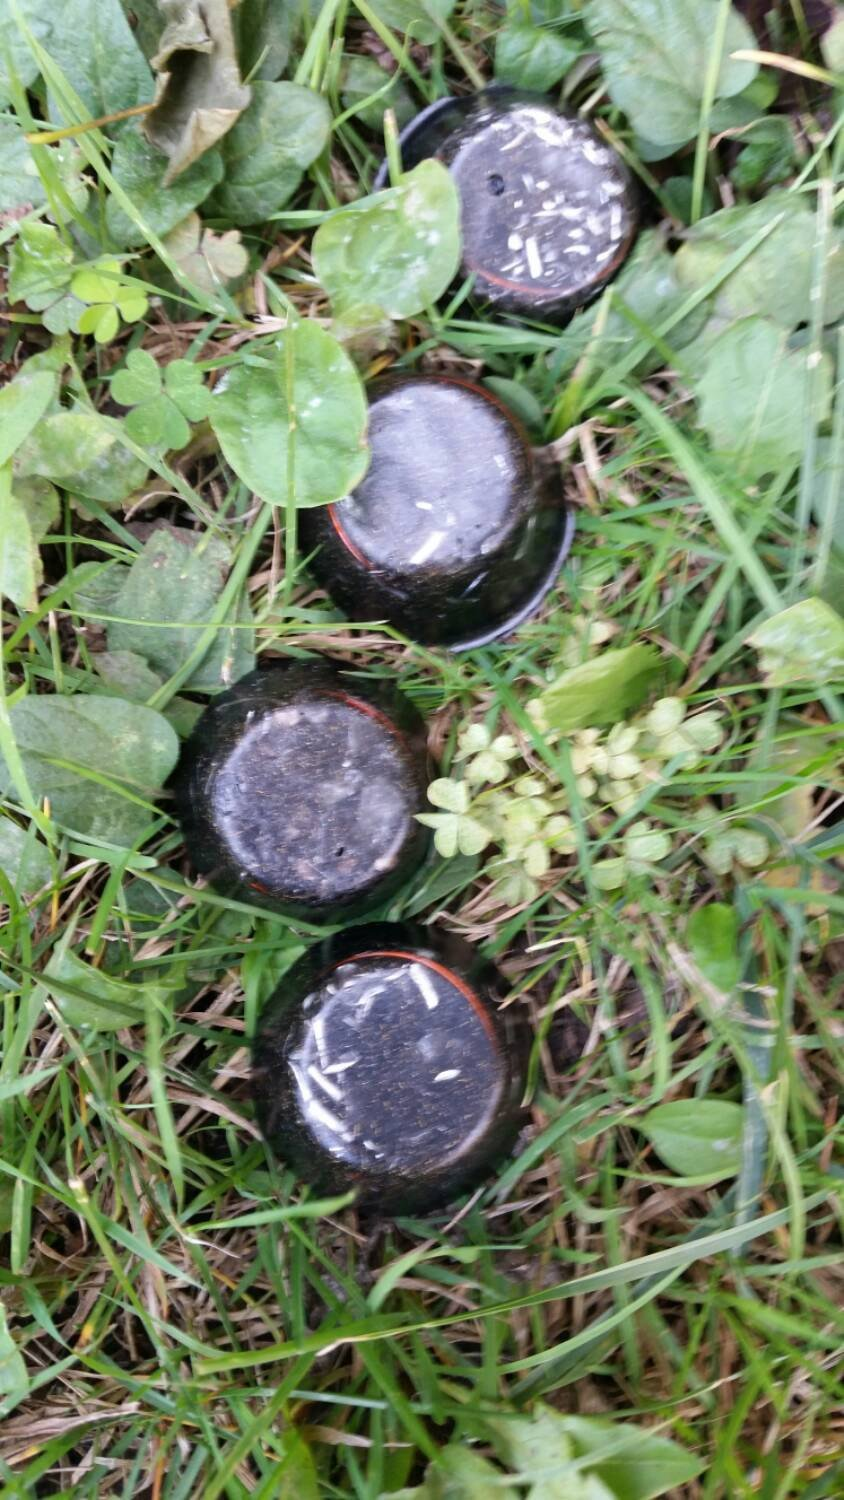 "Fingerprint Orgonite© Set of 4 Tactical Orgone Pucks ""Dirty Harry's"" (Indoor & Outdoor Use)/Ogone Towerbusters/Vegetable Garden"